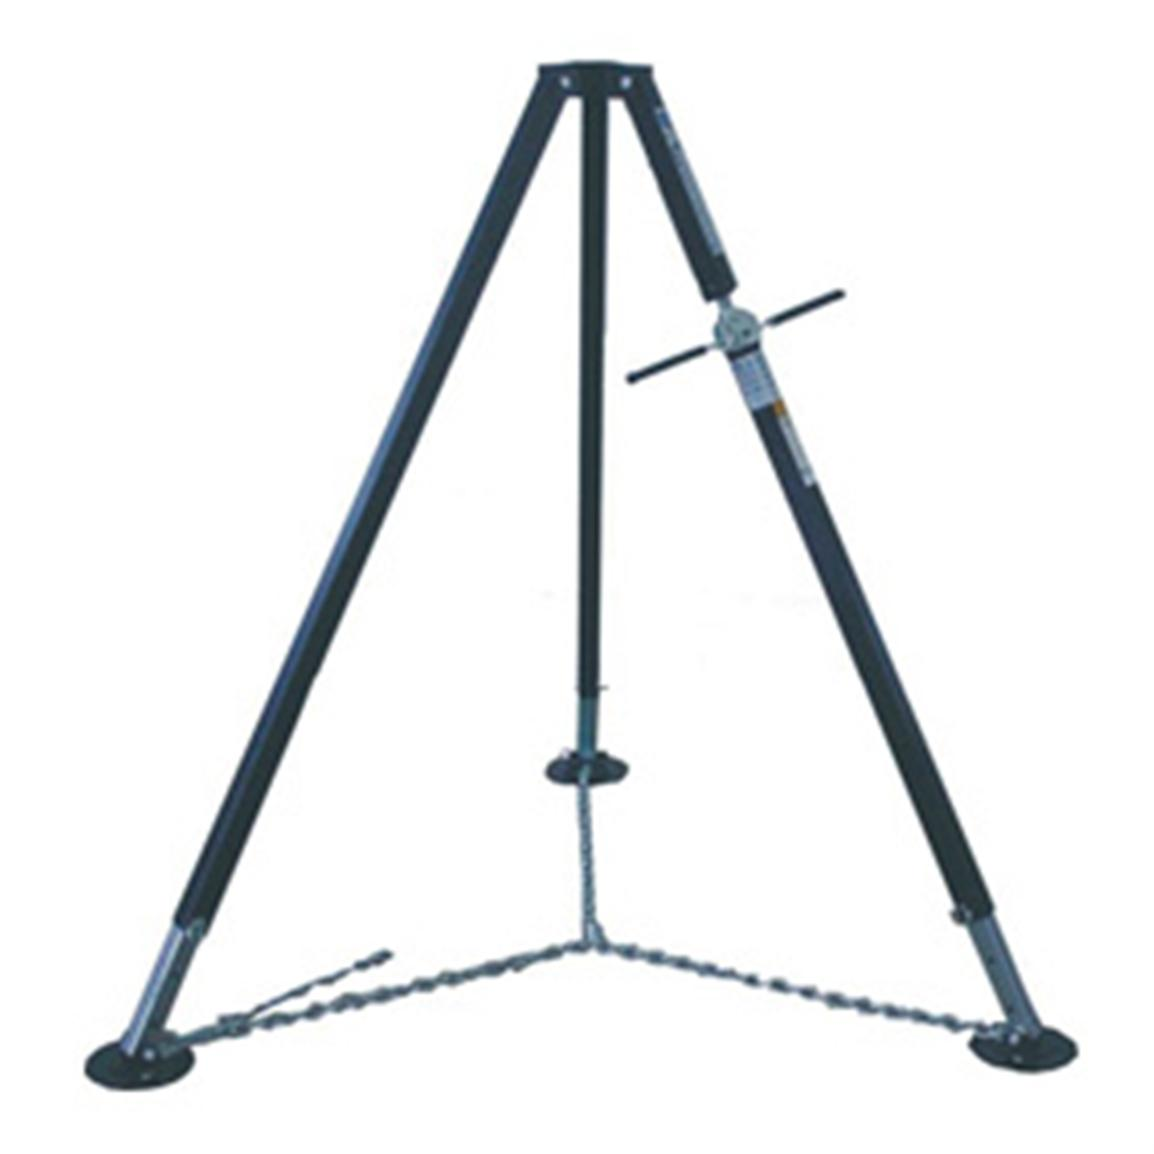 BAL Products Tripod Stabilizing Jack